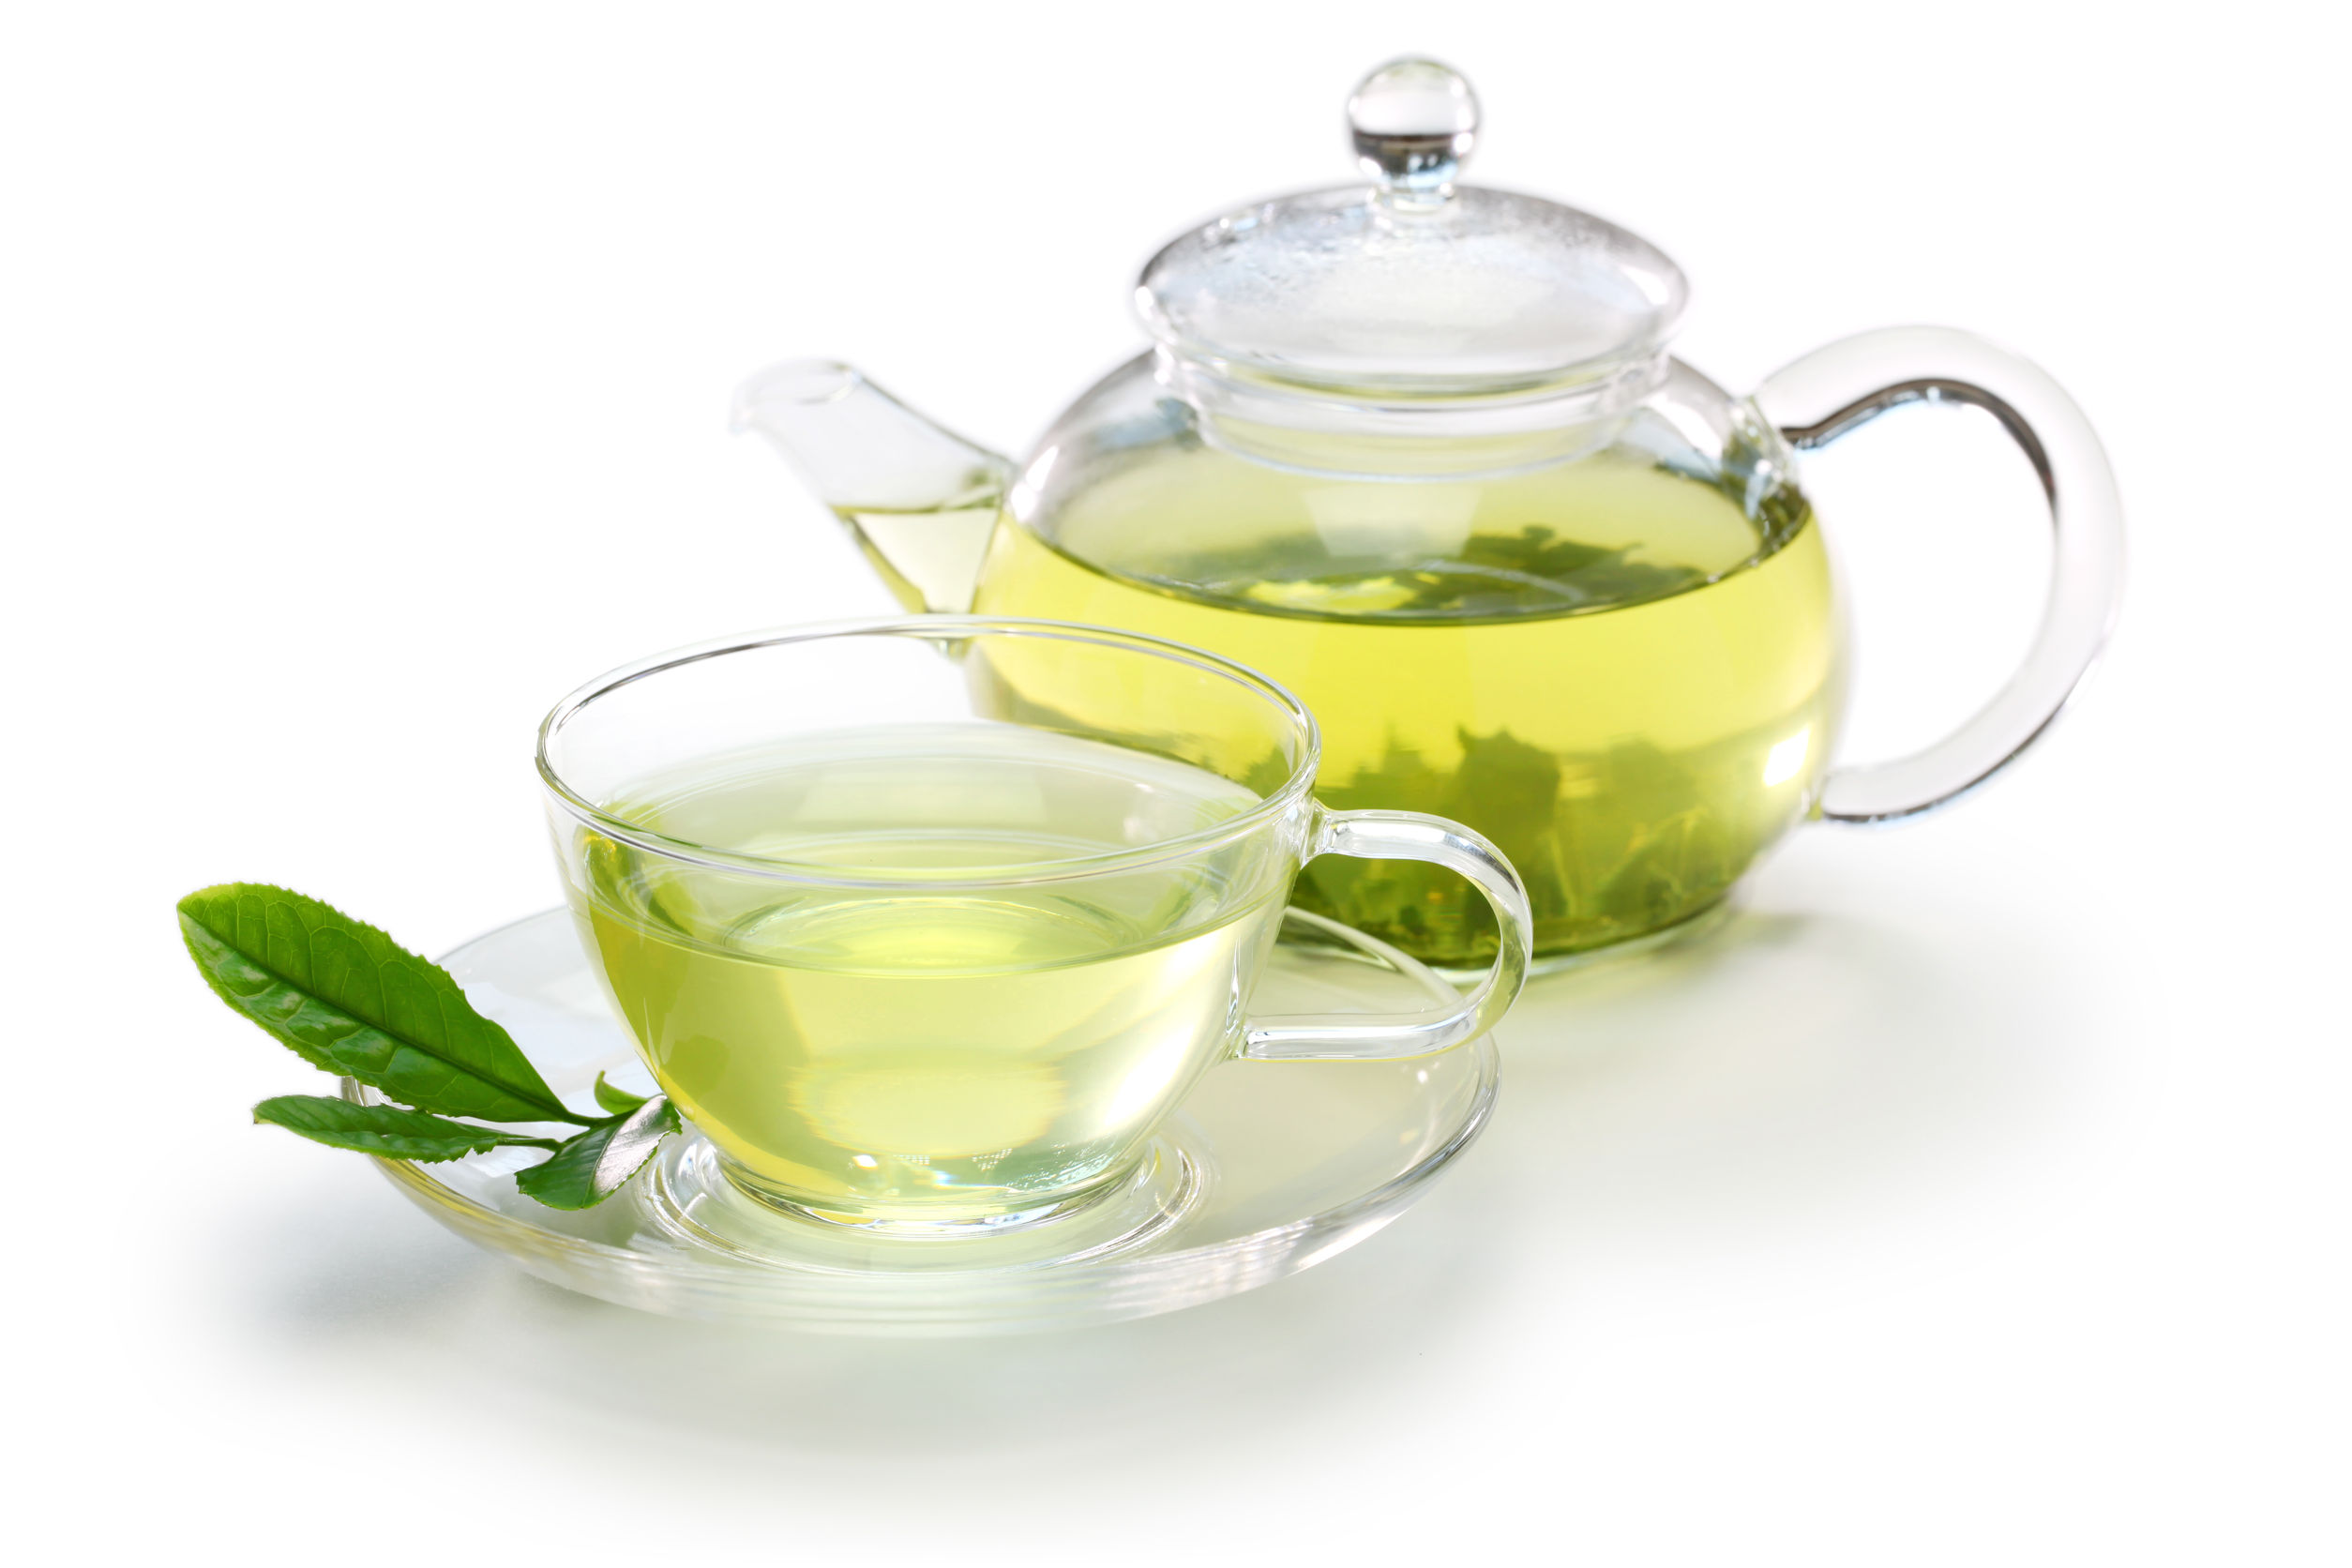 39663506 - glass cup of japanese green tea and teapot isolated on white background